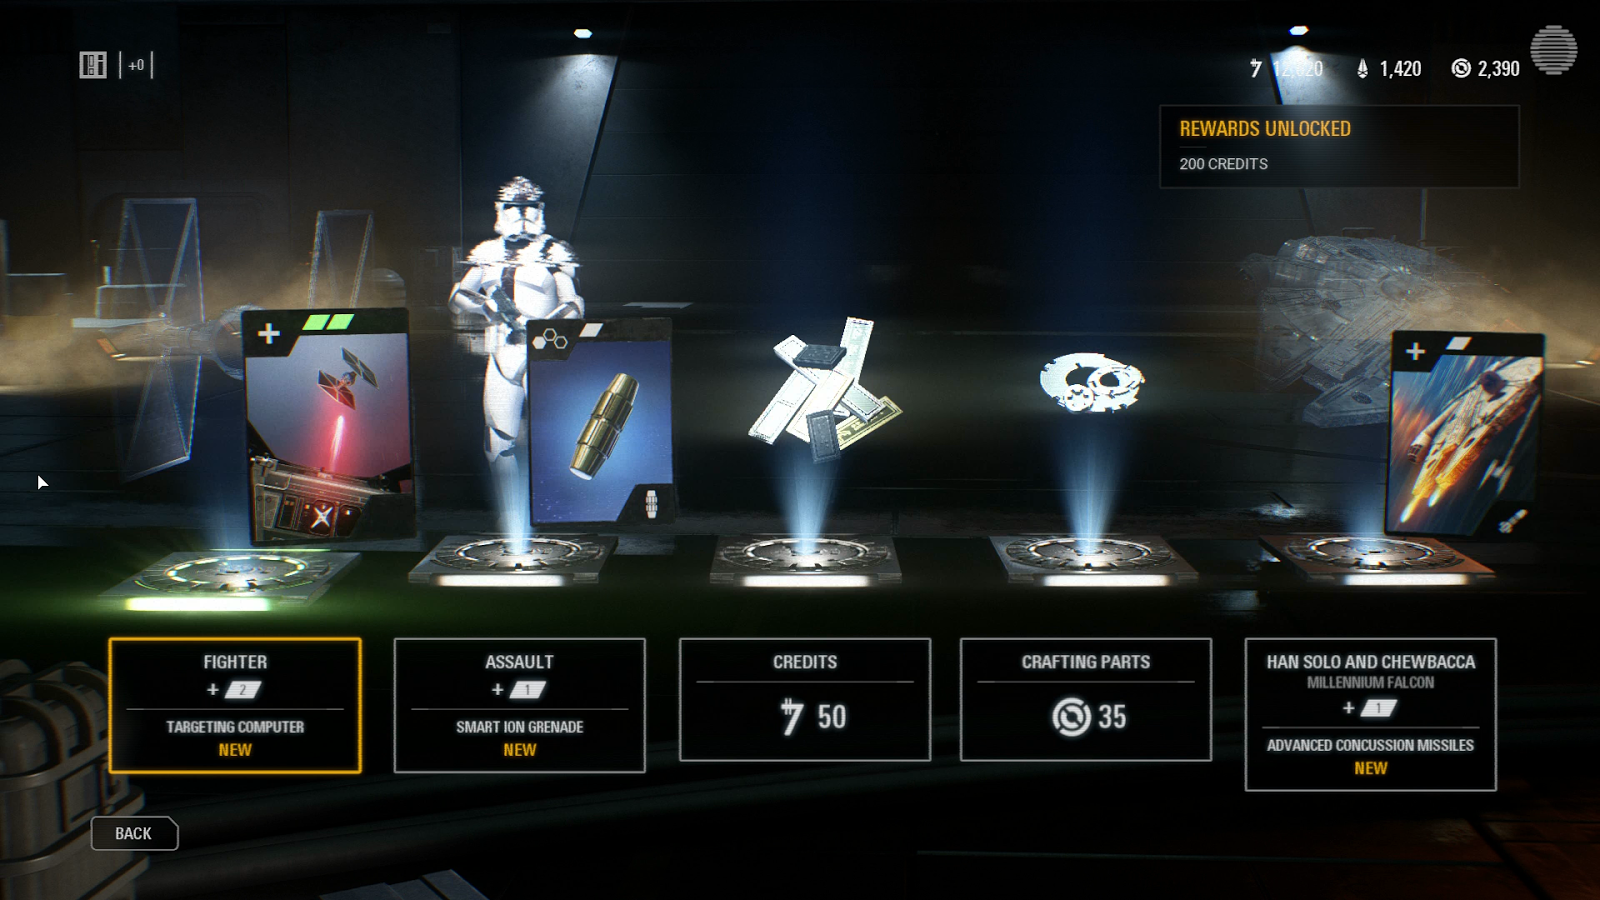 U.S. Senator Asks ESRB To Re-Examine Loot Boxes